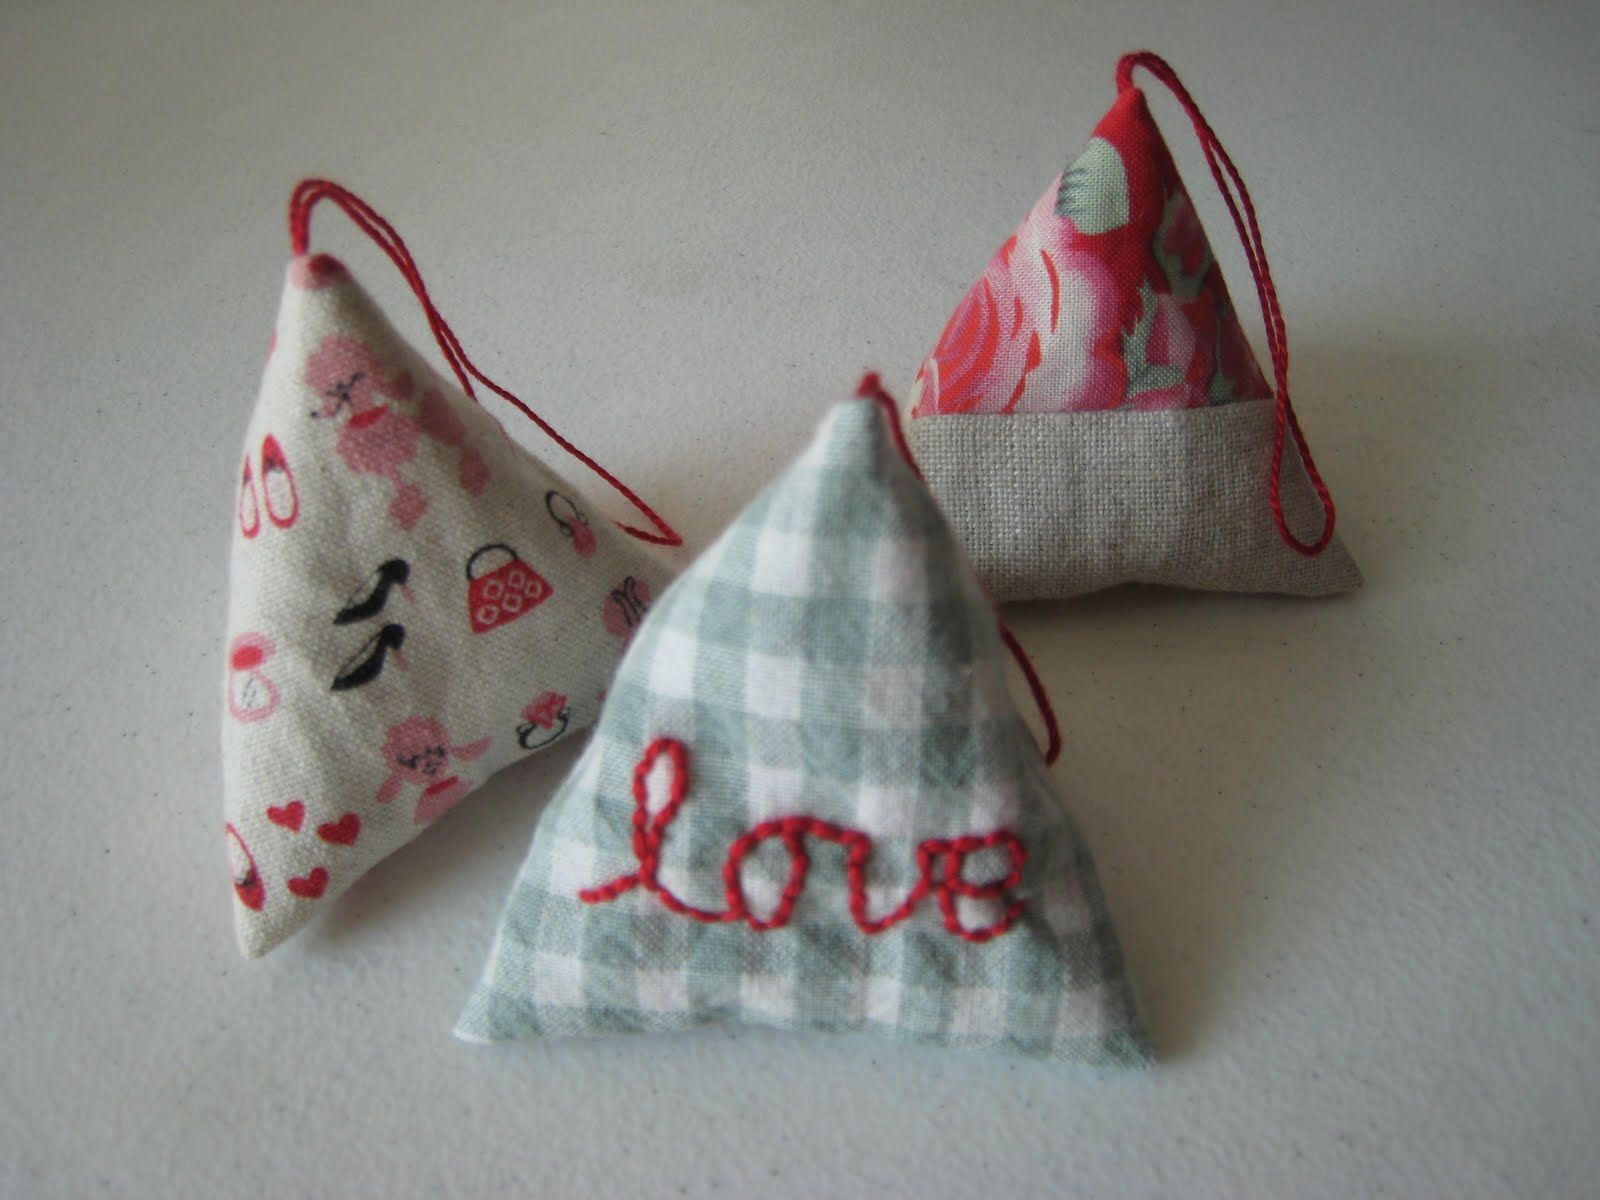 How to make a pyramid sachet   chick chick sewing